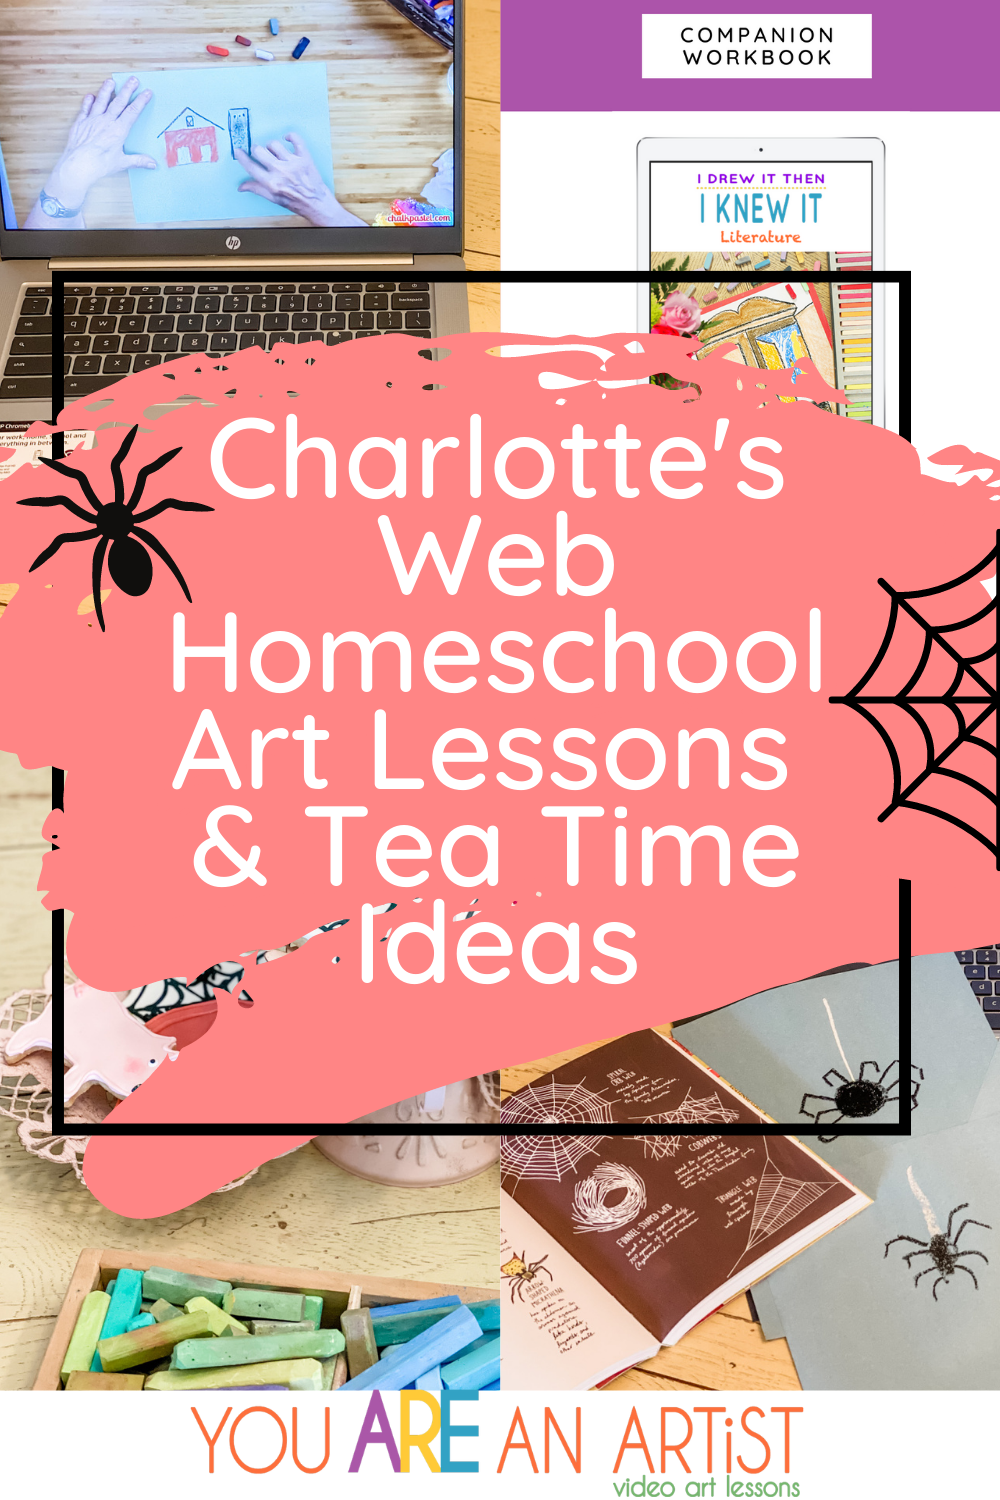 We have some Terrific Charlotte's Web homeschool art lessons to help you make lasting memories with your children while creating together! #homeschoolart #onlineartlessons #charlottesweb #booksforkids #charlotteswebart